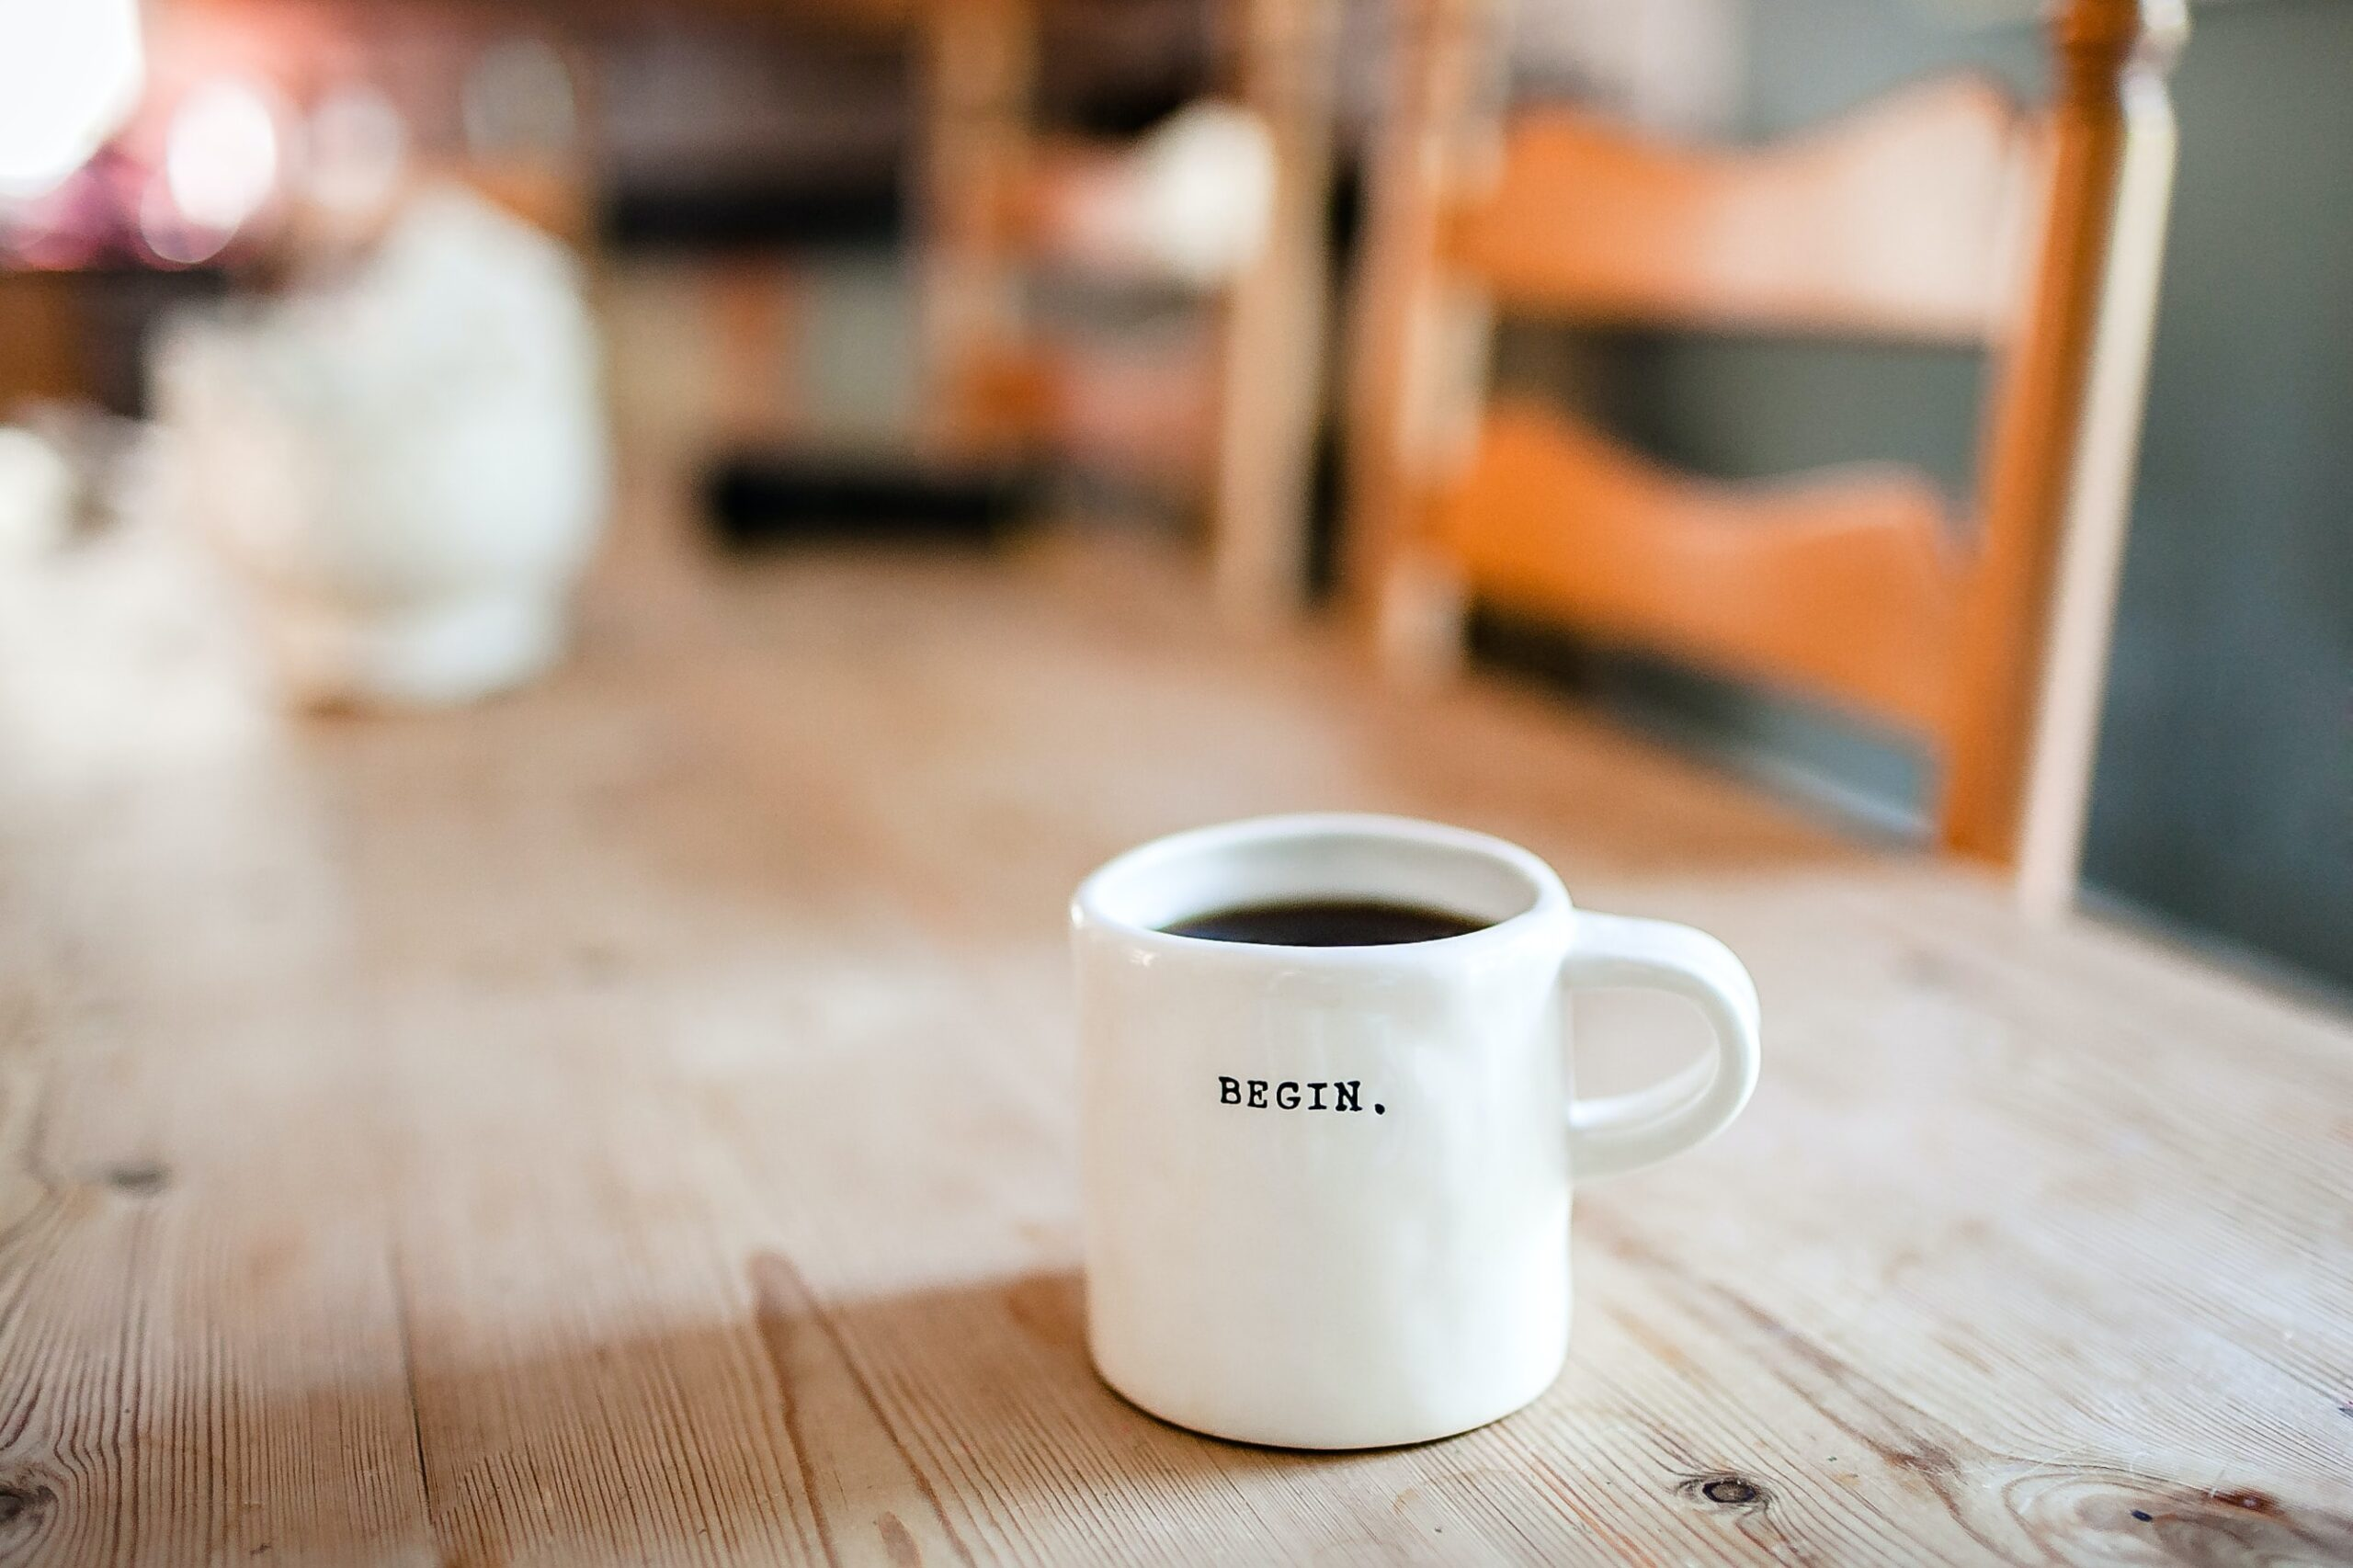 """White coffee mug that says """"Begin."""" on top of a wooden table."""